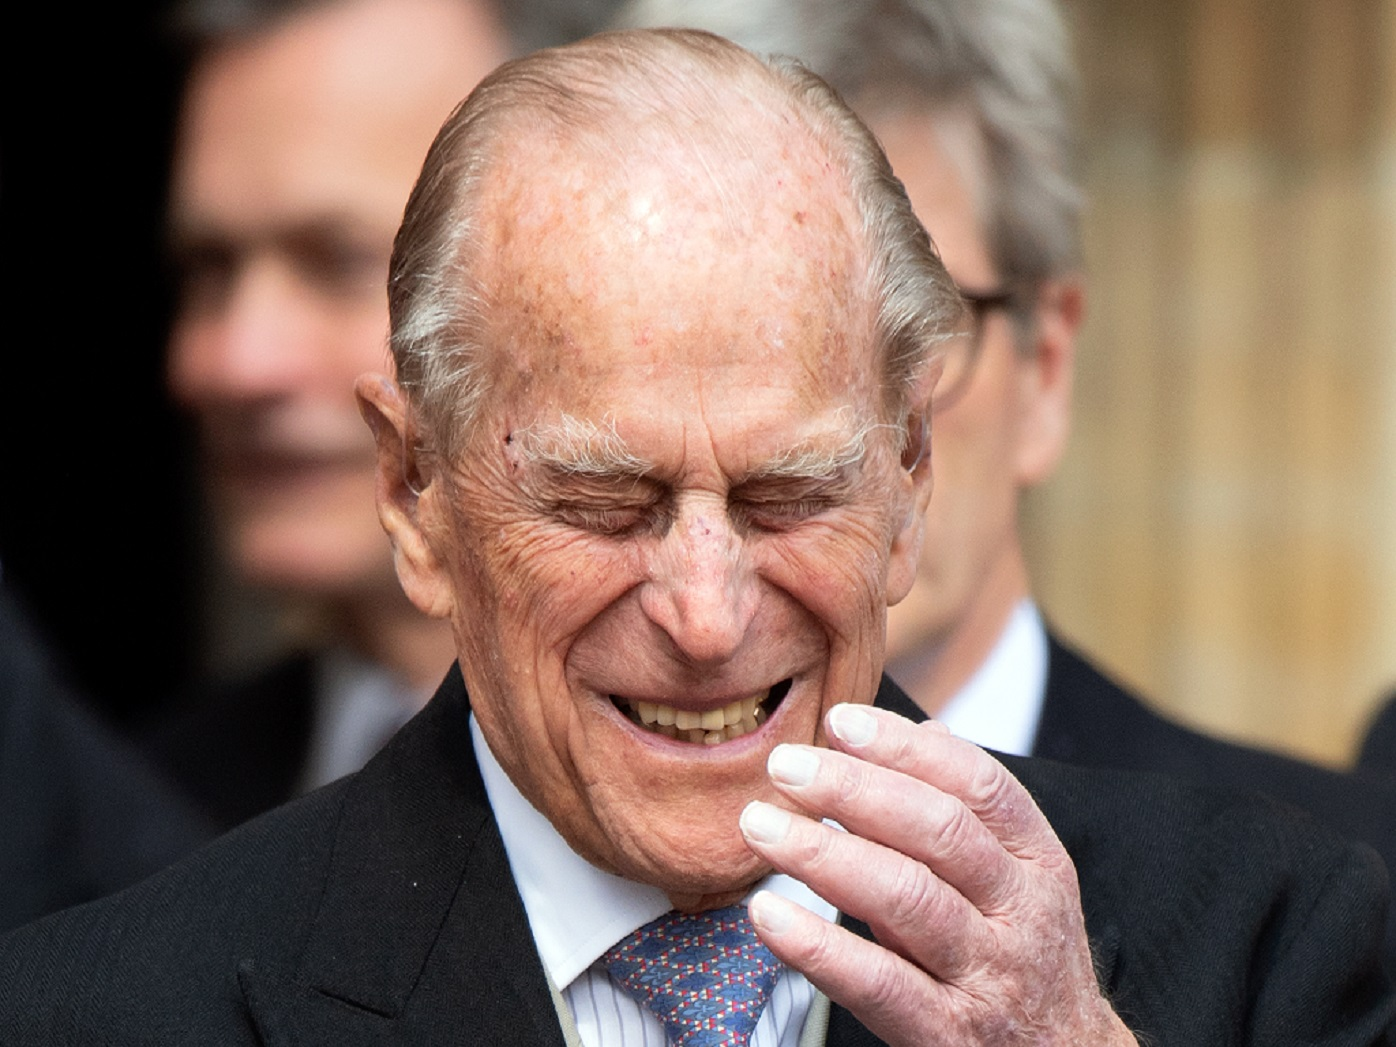 Prince Philip laughing eyes closed